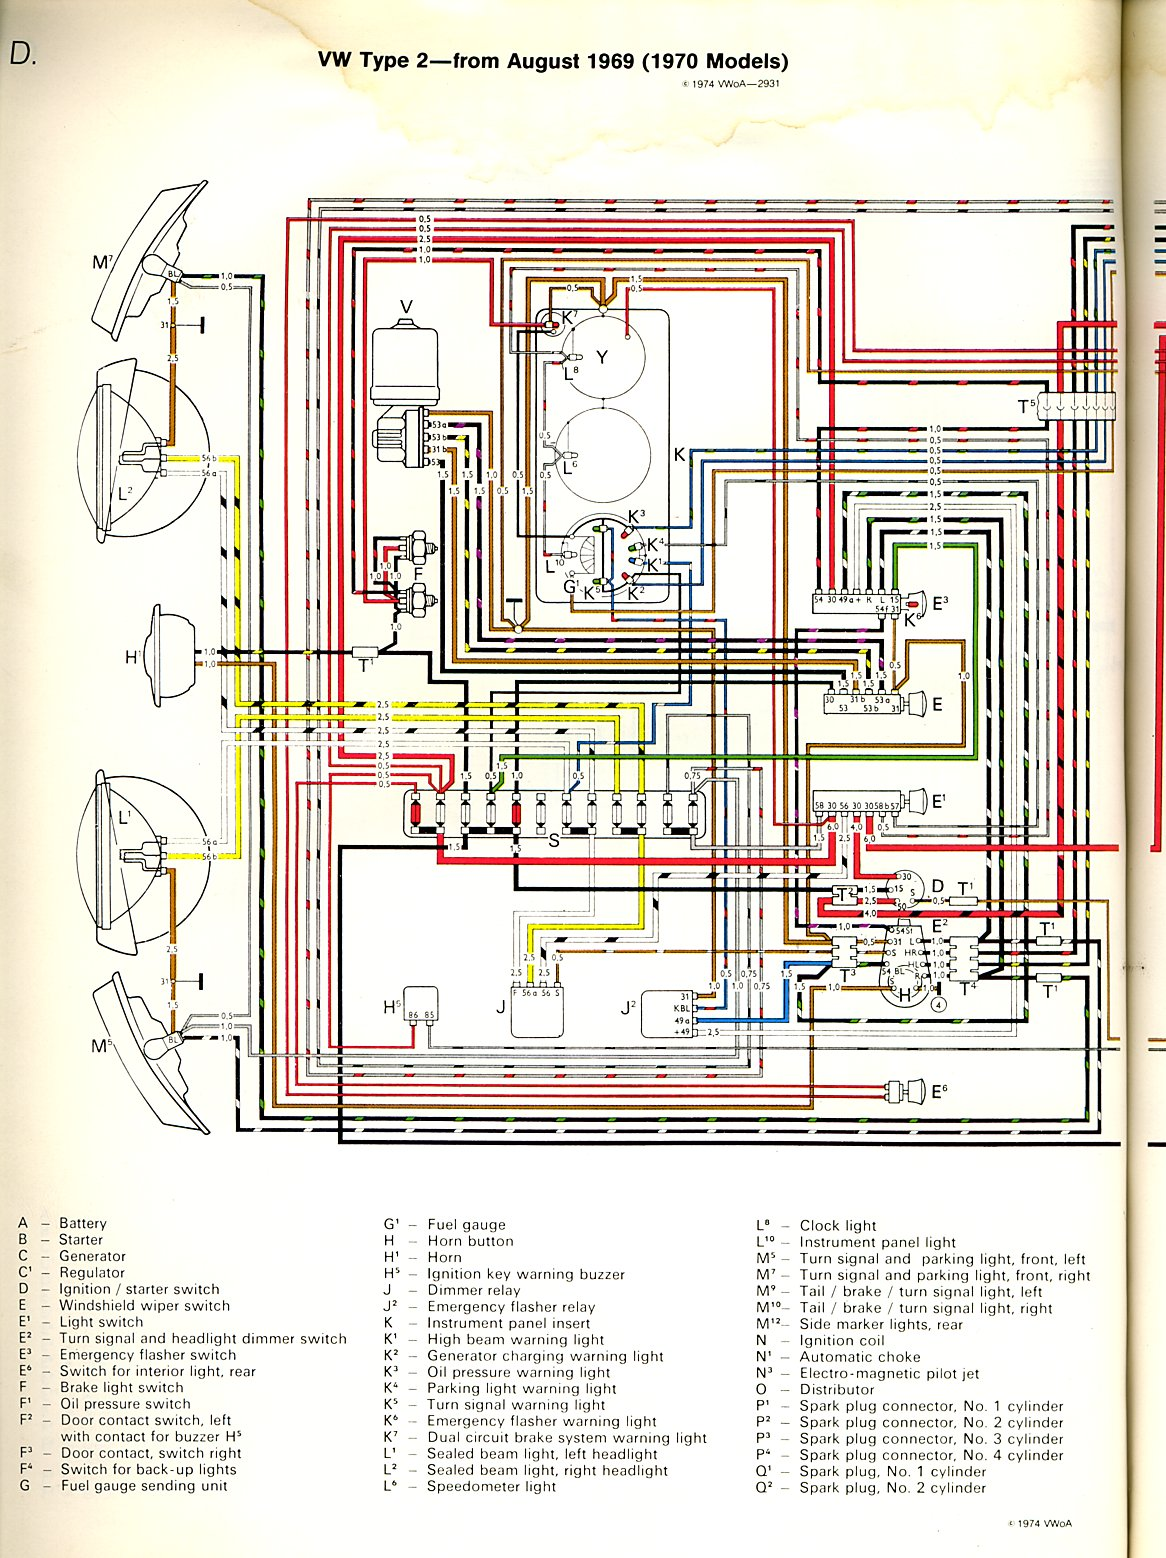 Thesamba type 2 wiring diagrams publicscrutiny